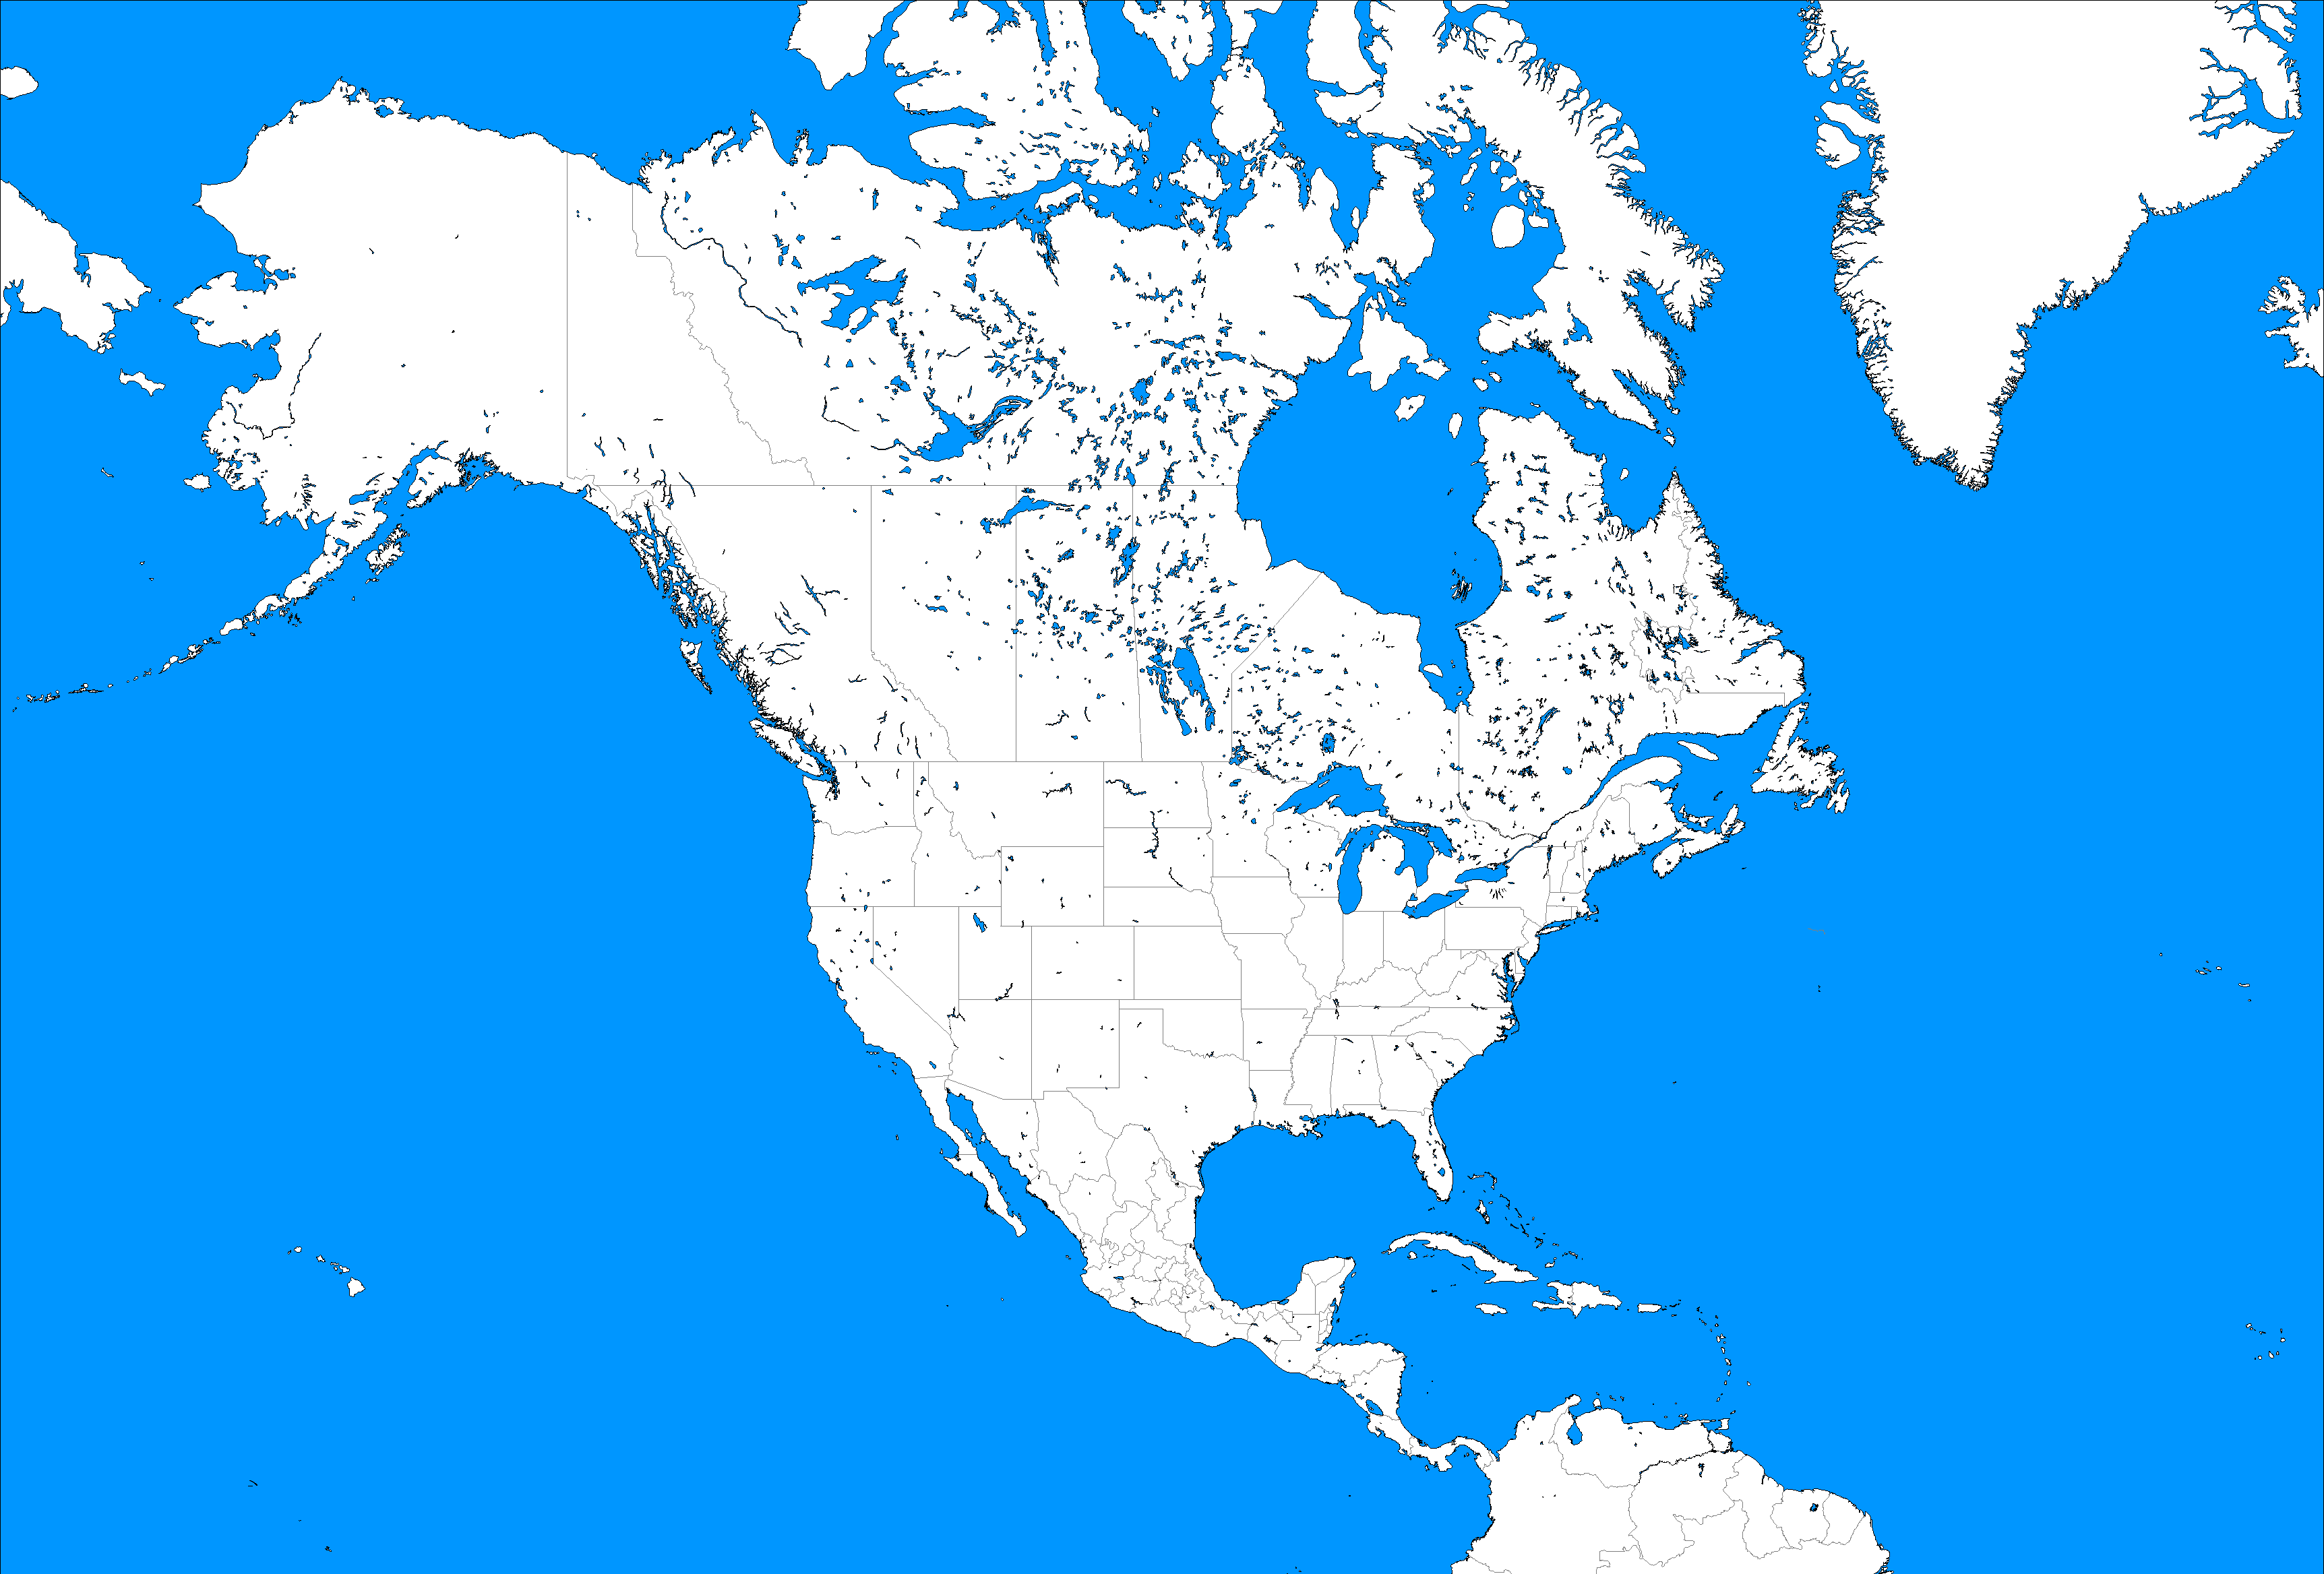 Large Blank North America Template by mdc01957 on DeviantArt